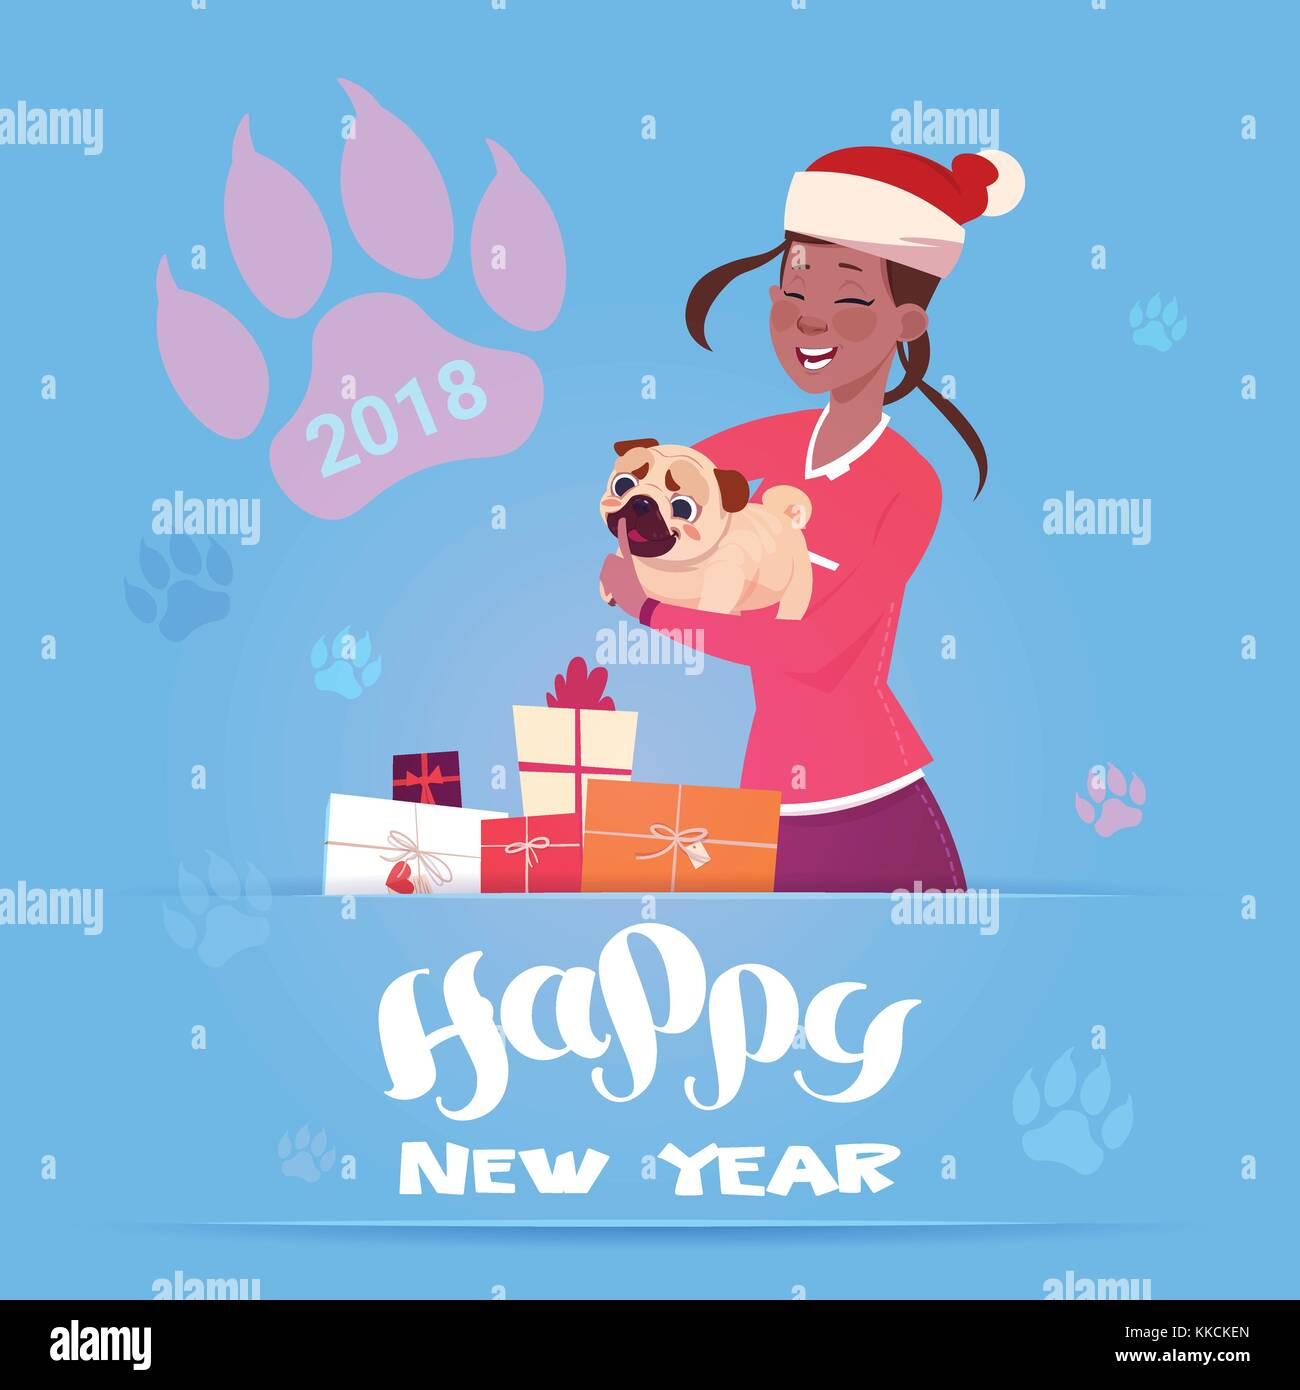 african american woman in santa hat holding cute pug dog winter holidays 2018 banner new year card design